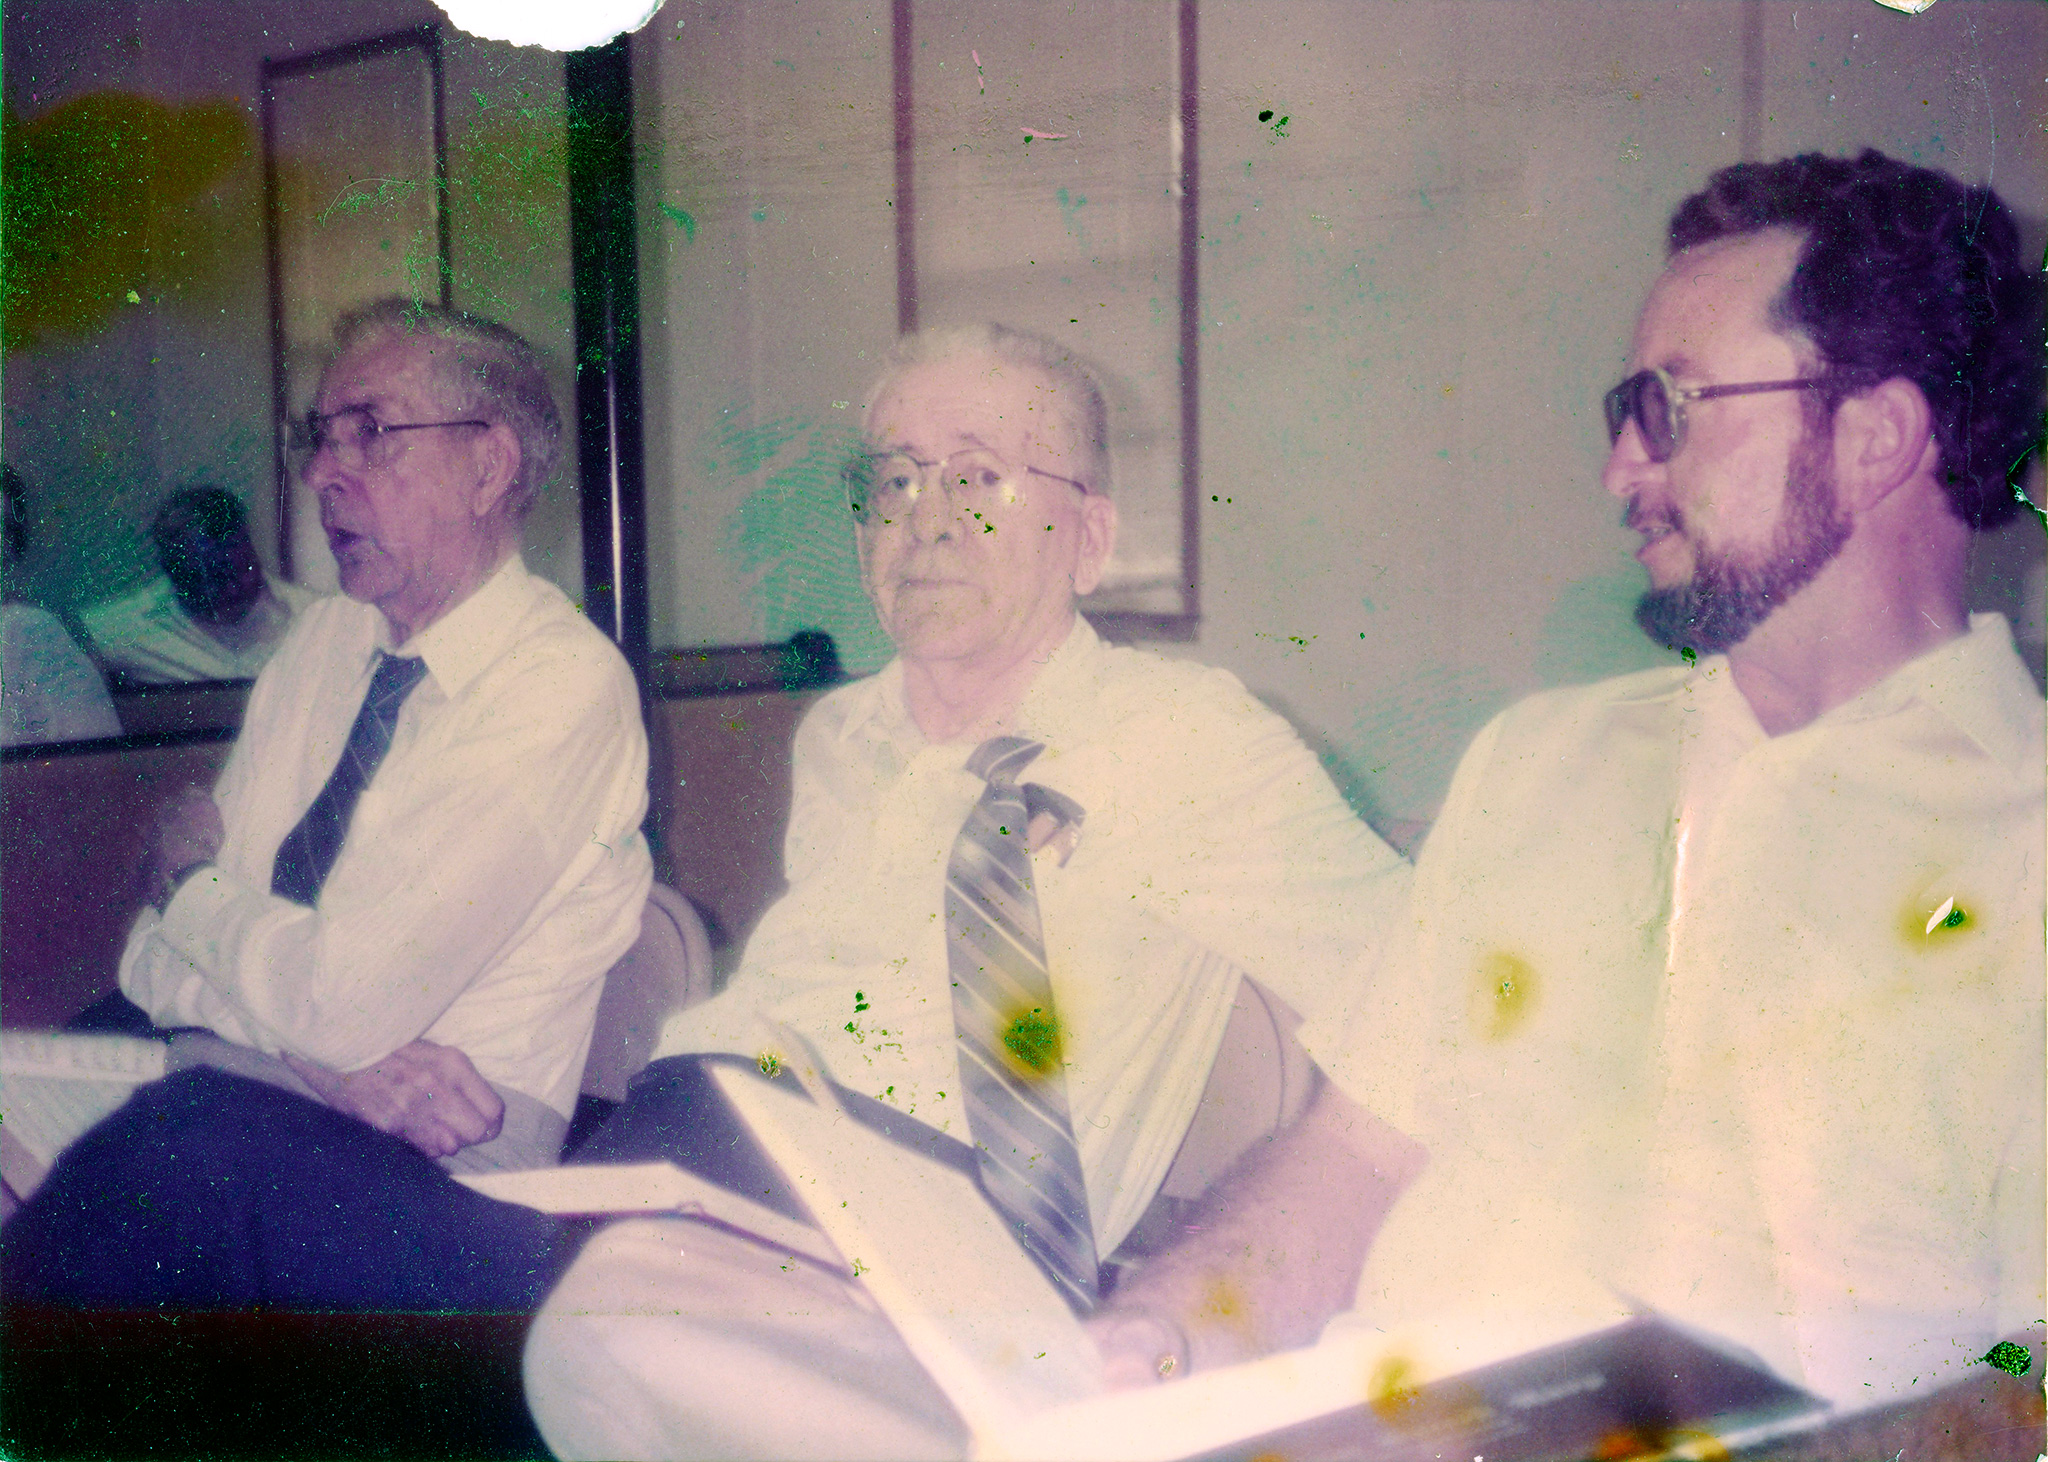 raymond c hamrick s contributions to sacred harp singing and raymond c hamrick horace hamrick and oscar mcguire at a sacred harp singing in 1988 courtesy of patti hamrick dancy